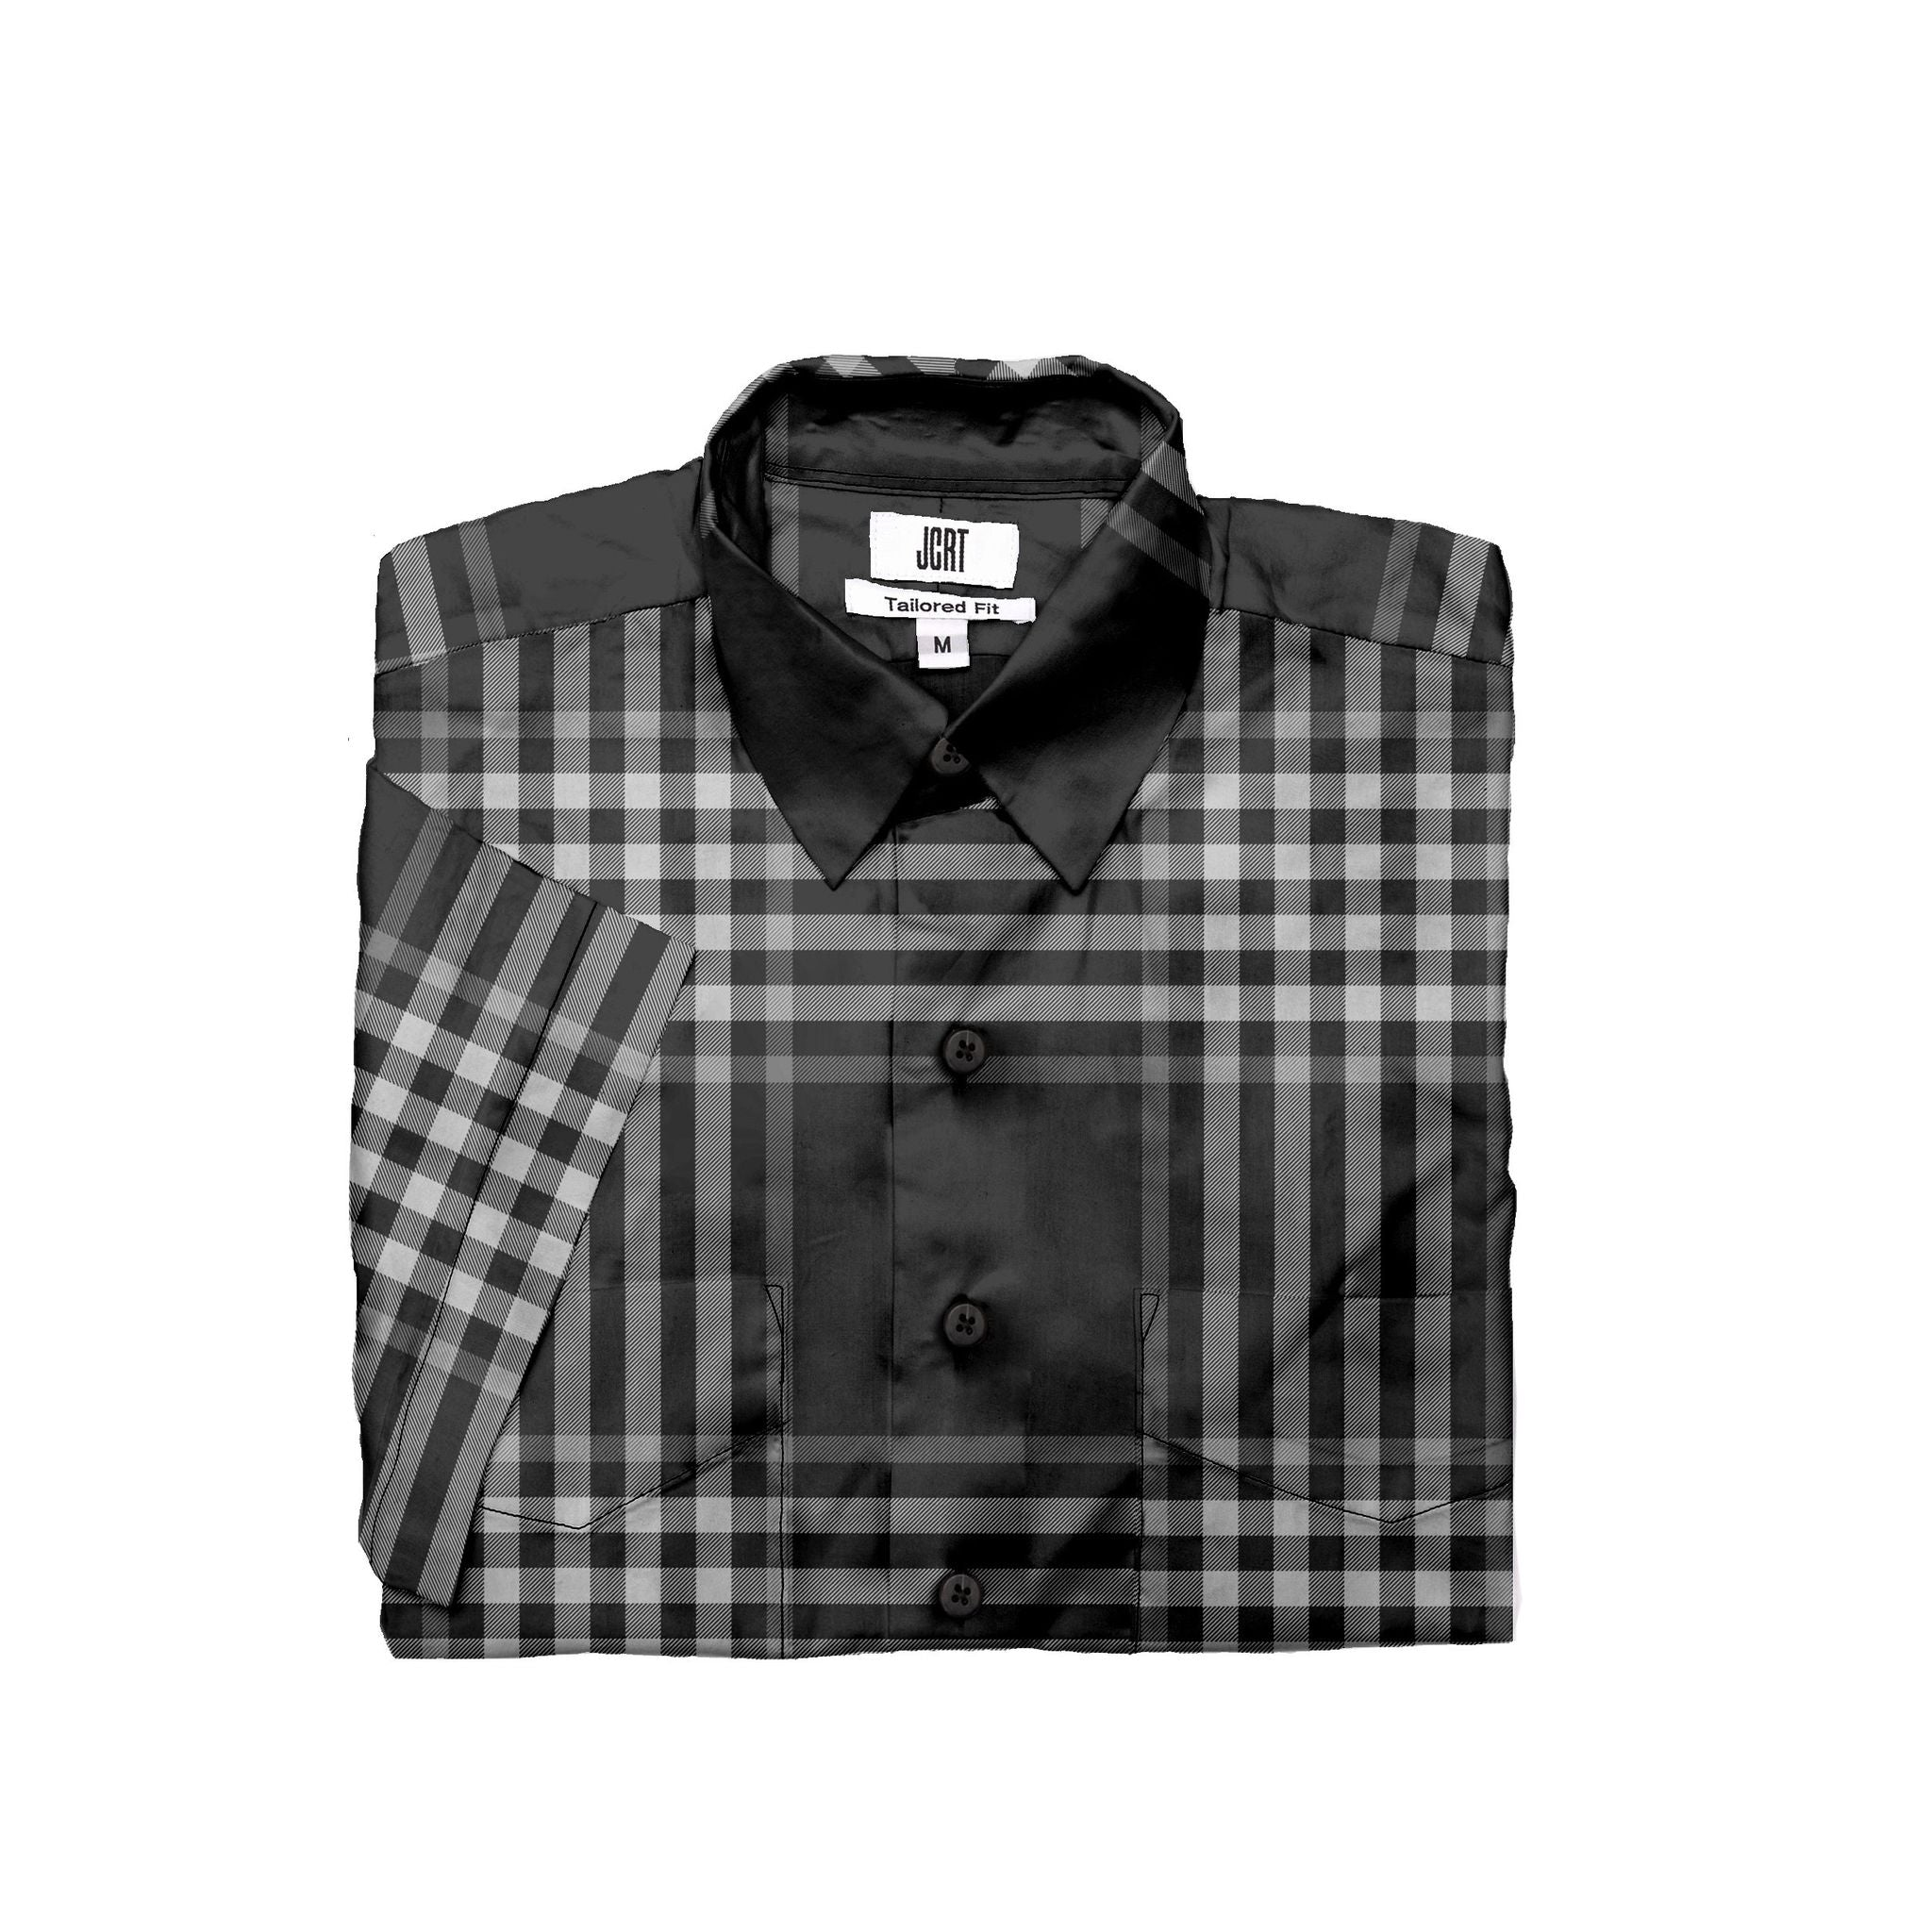 The Richard Burton Plaid Short Sleeve Shirt